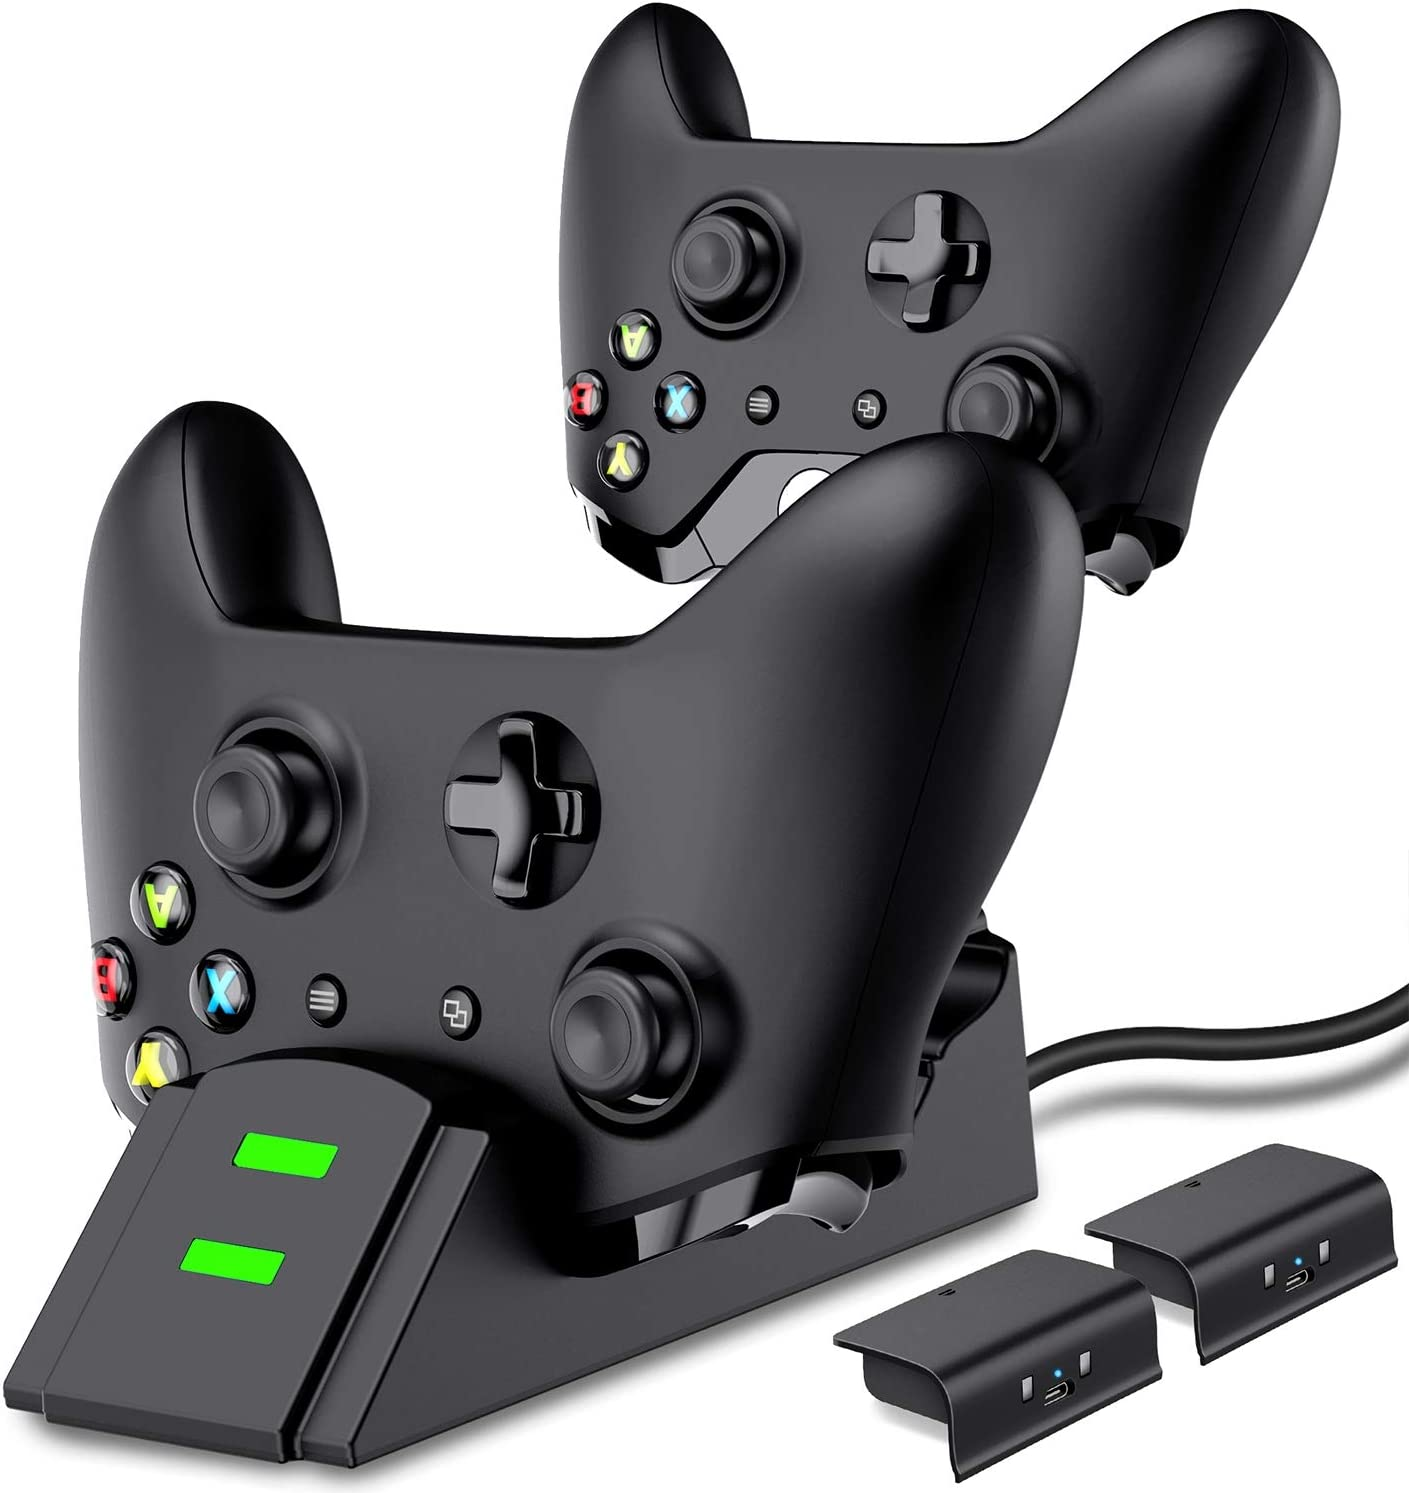 Xbox One Controller Charger, Xbox Controller Charging Station for Xbox One/One X/One S/One Elite, Xbox One Charger with 2 x 800mAh Rechargeable Battery Packs